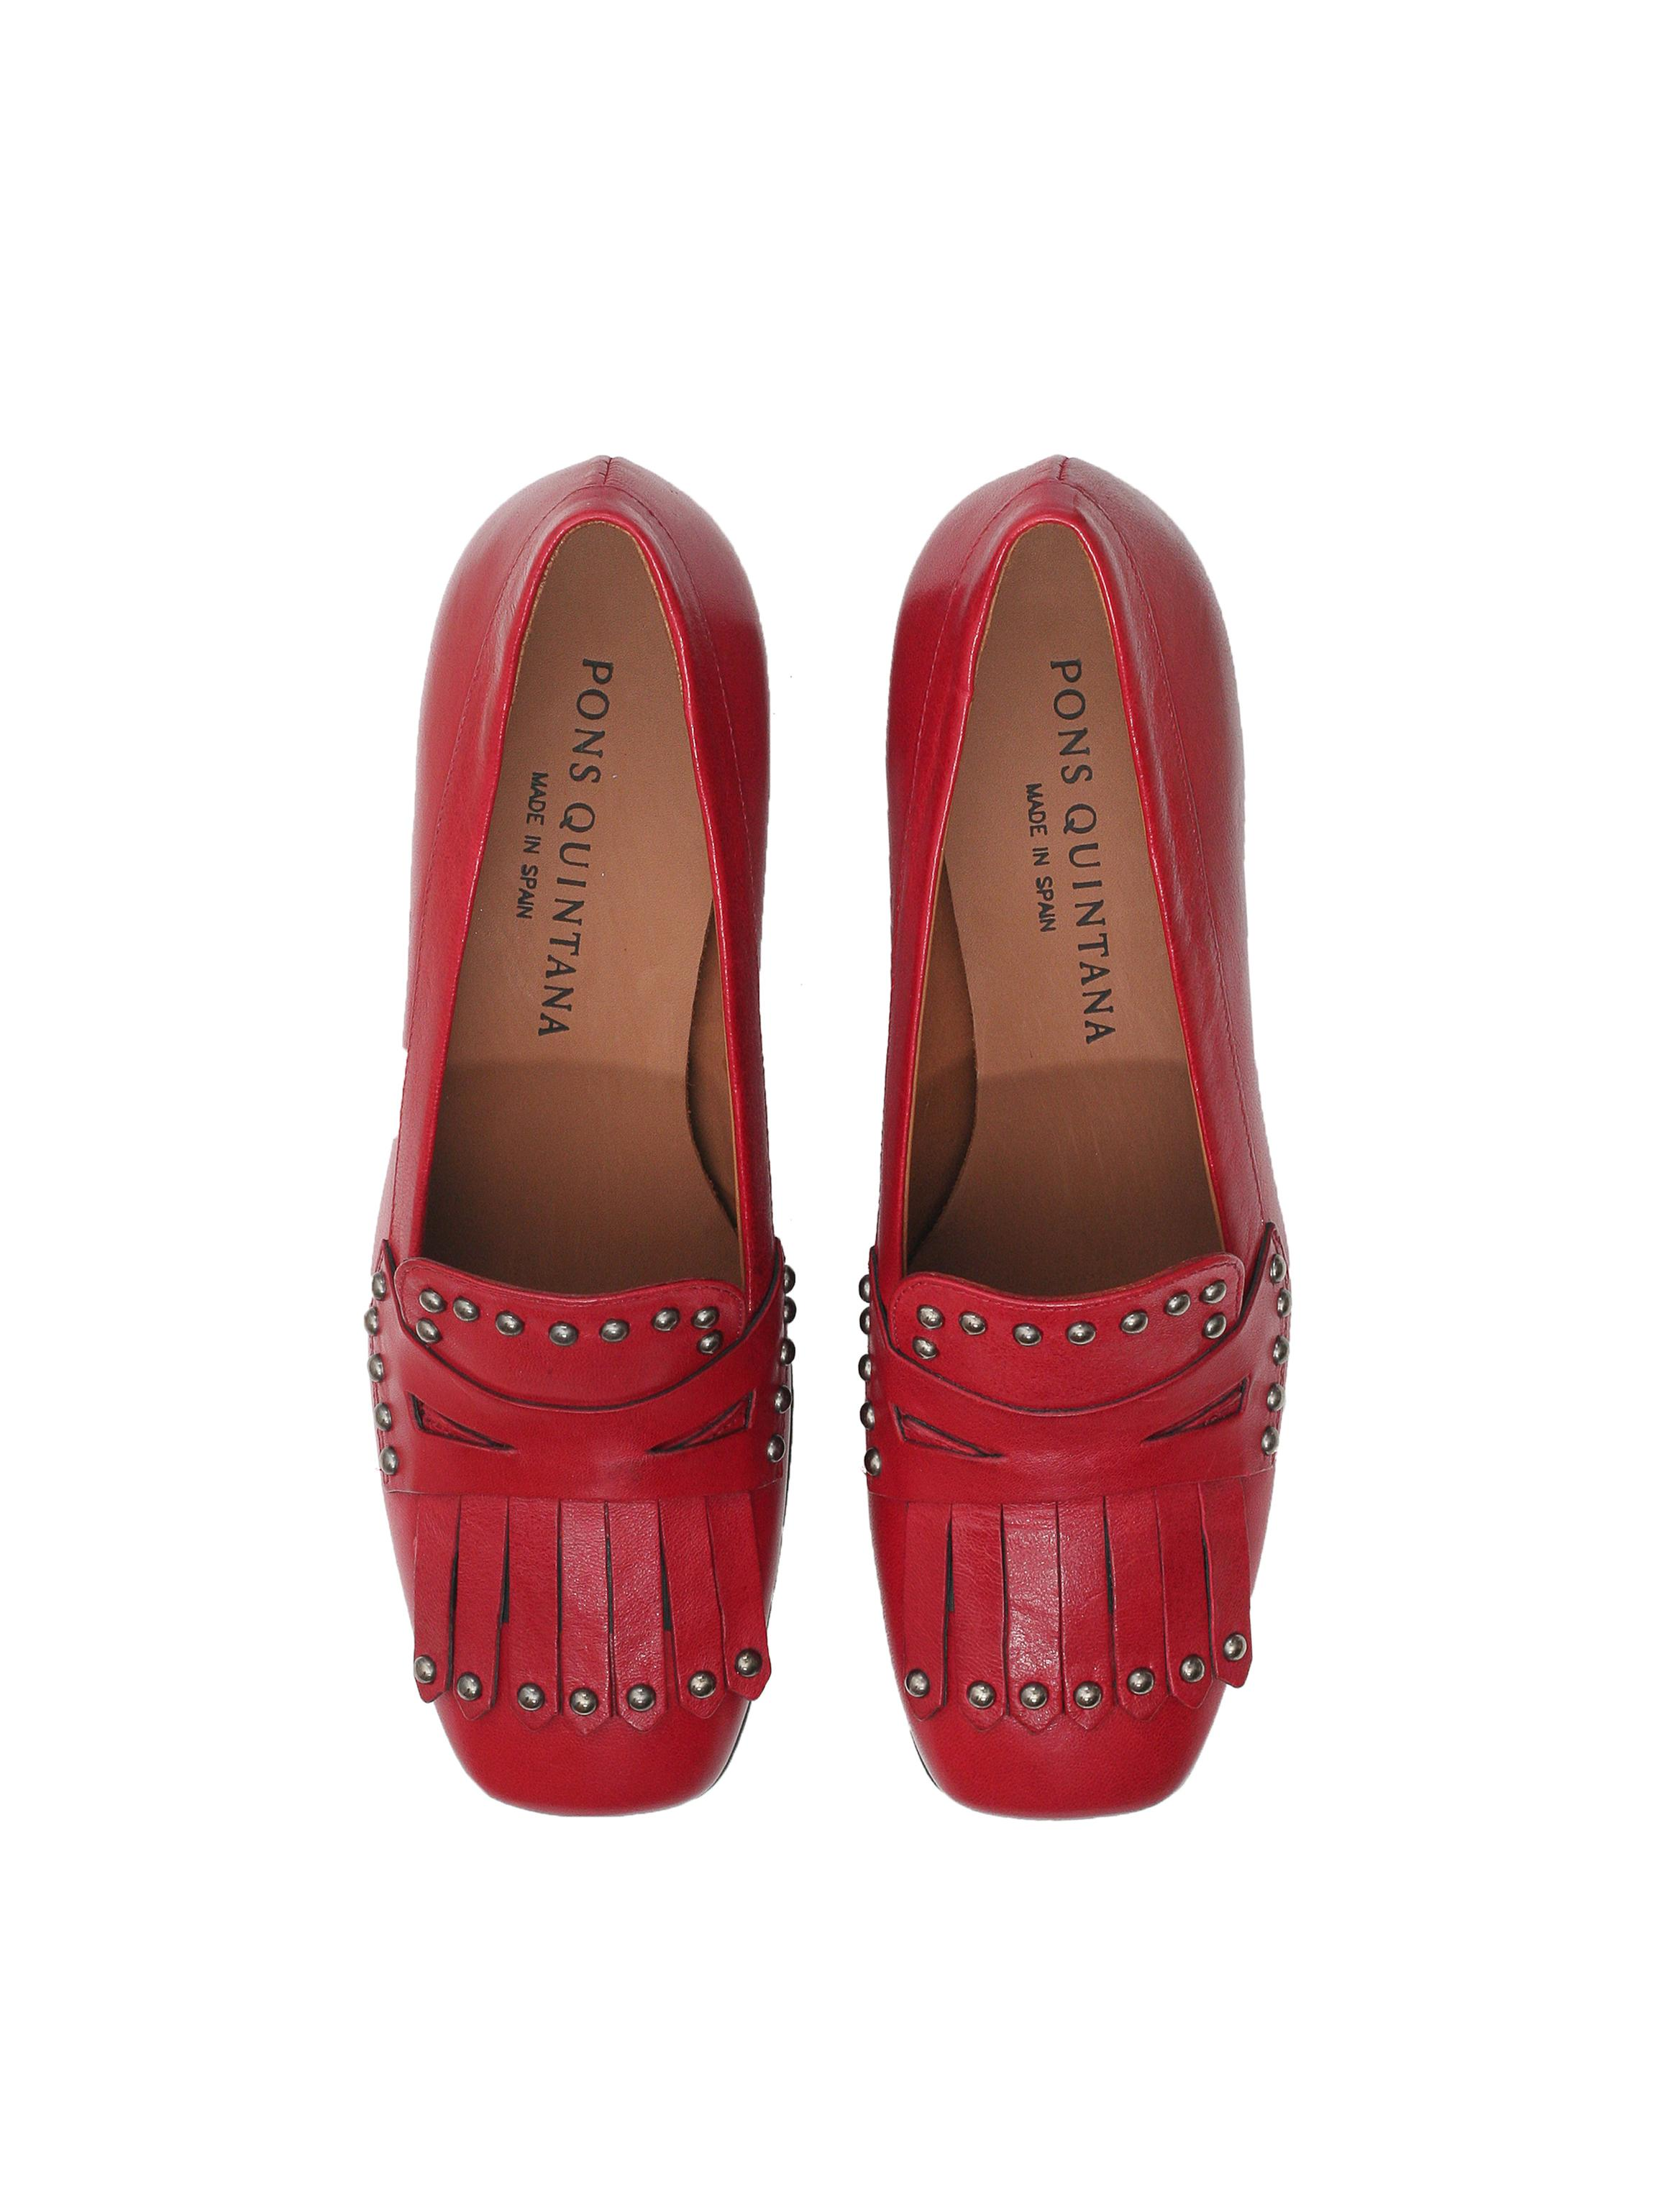 WINE TEQUILA MOCCASIN